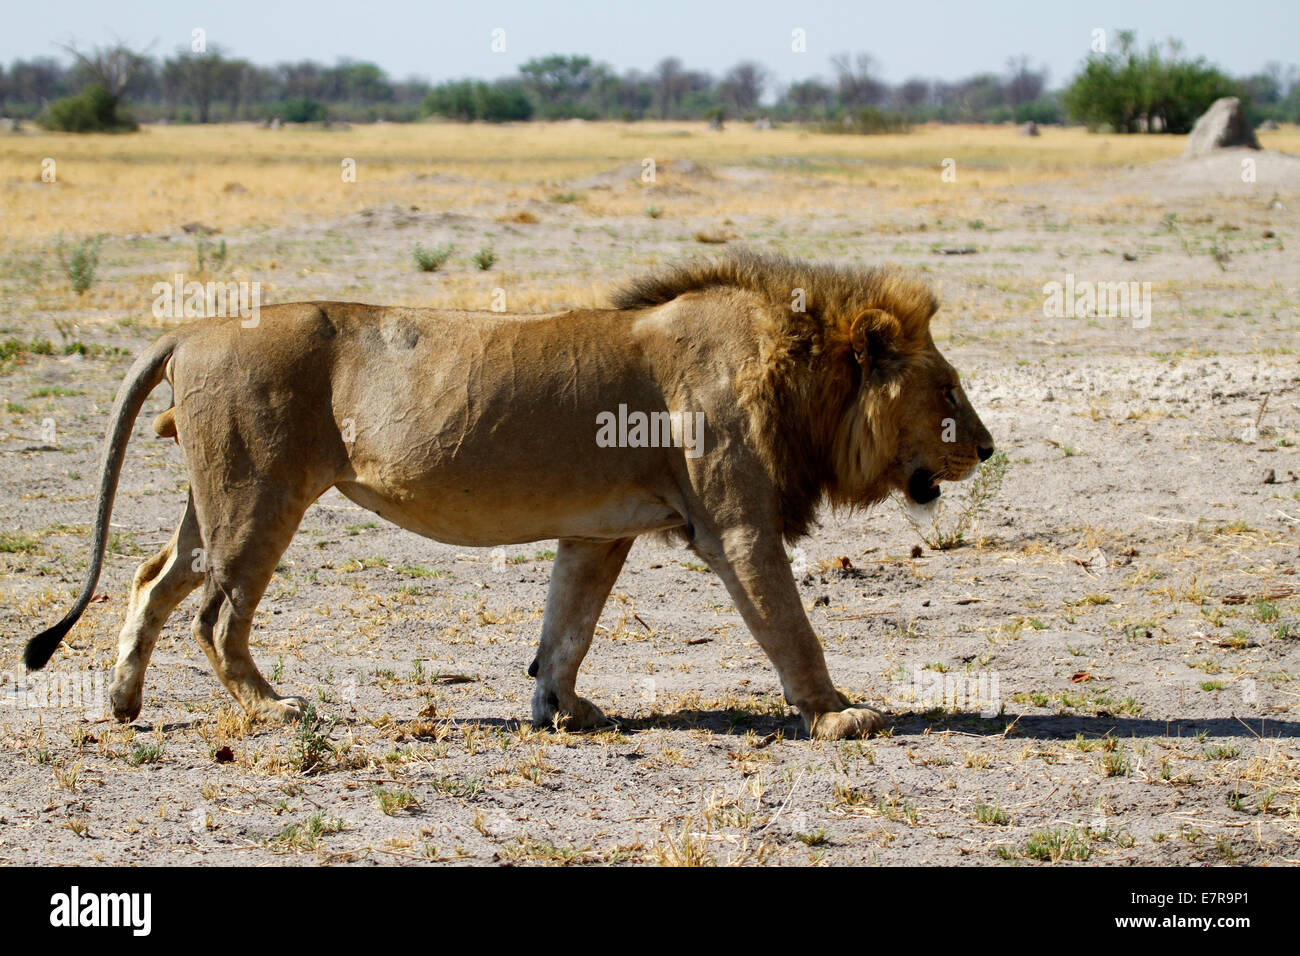 The regal lion, Africa's top & most feared apex predator ...